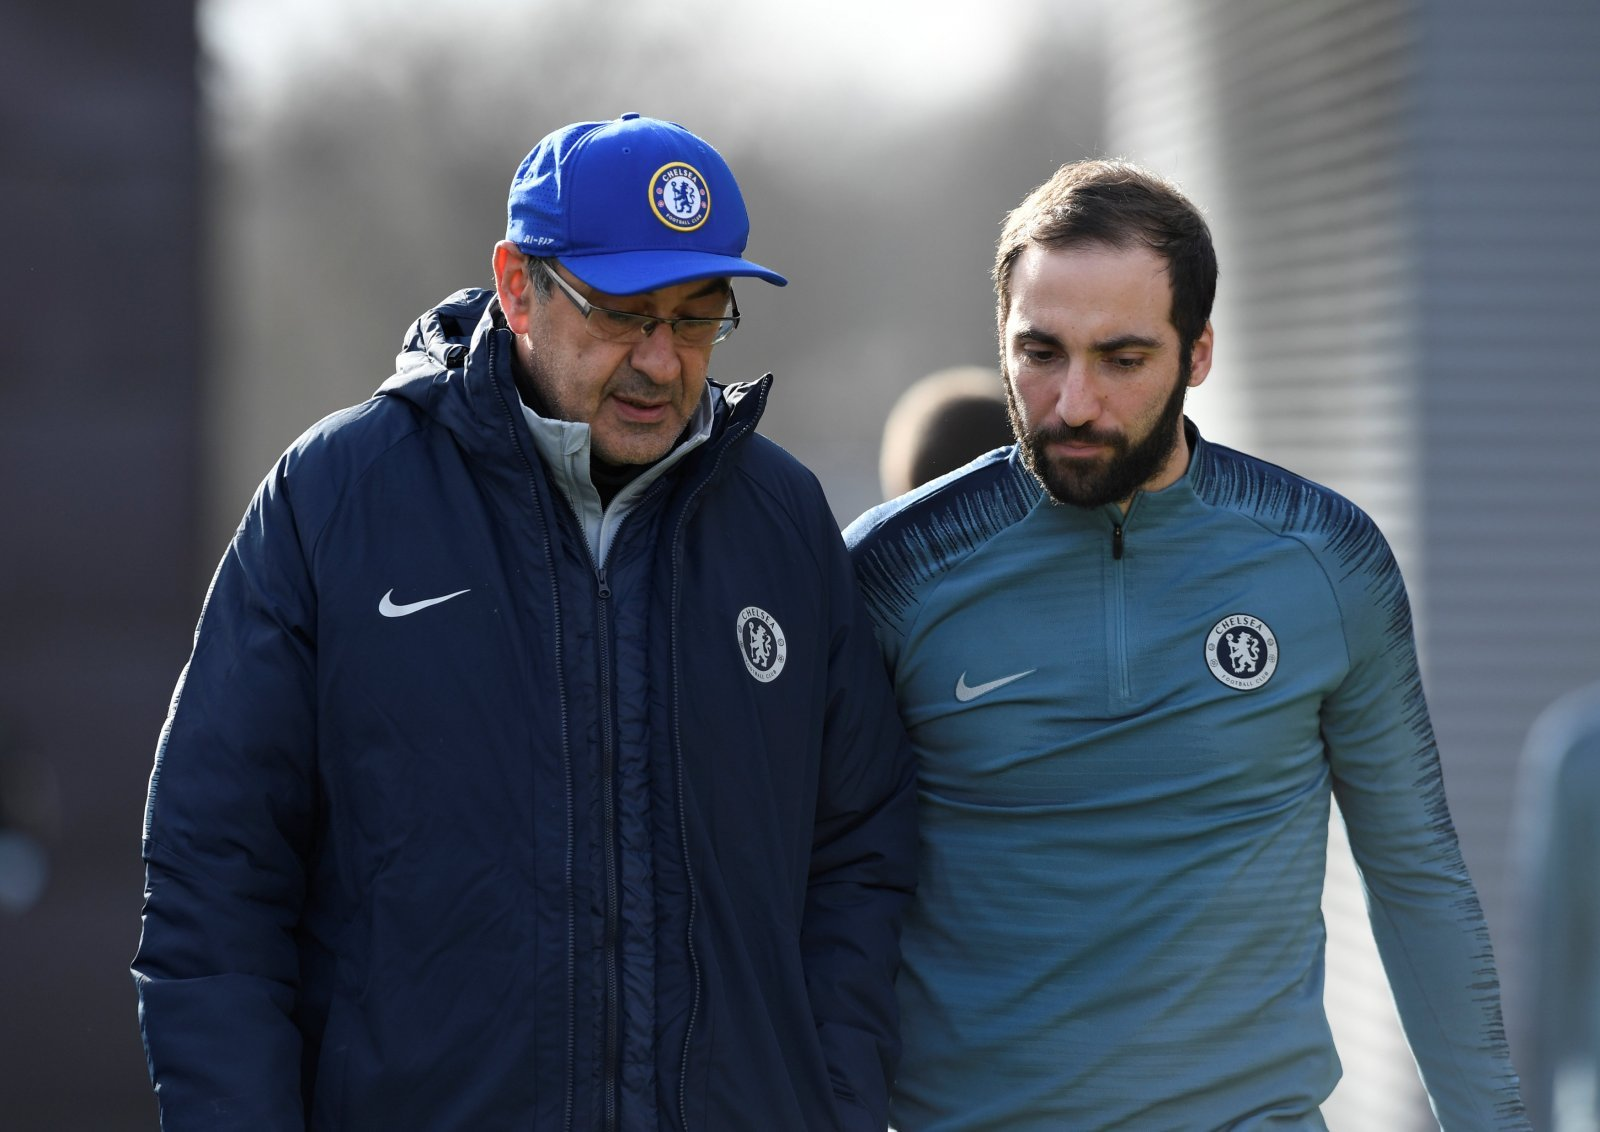 Opinion: Jorginho and Higuain's telepathic connection could leave Sarri and co drooling